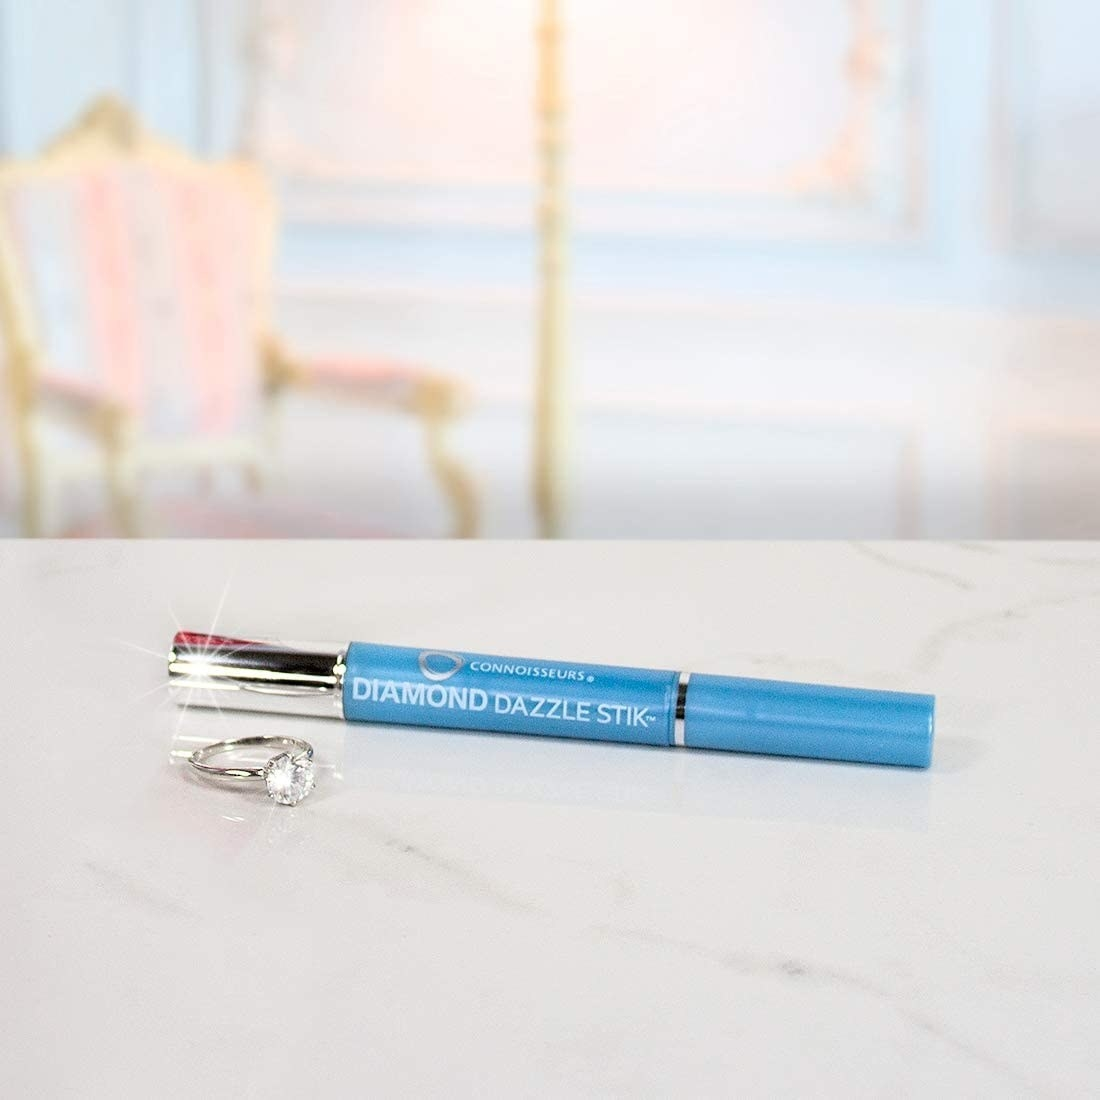 the diamond cleaning pen on a table next to a ring